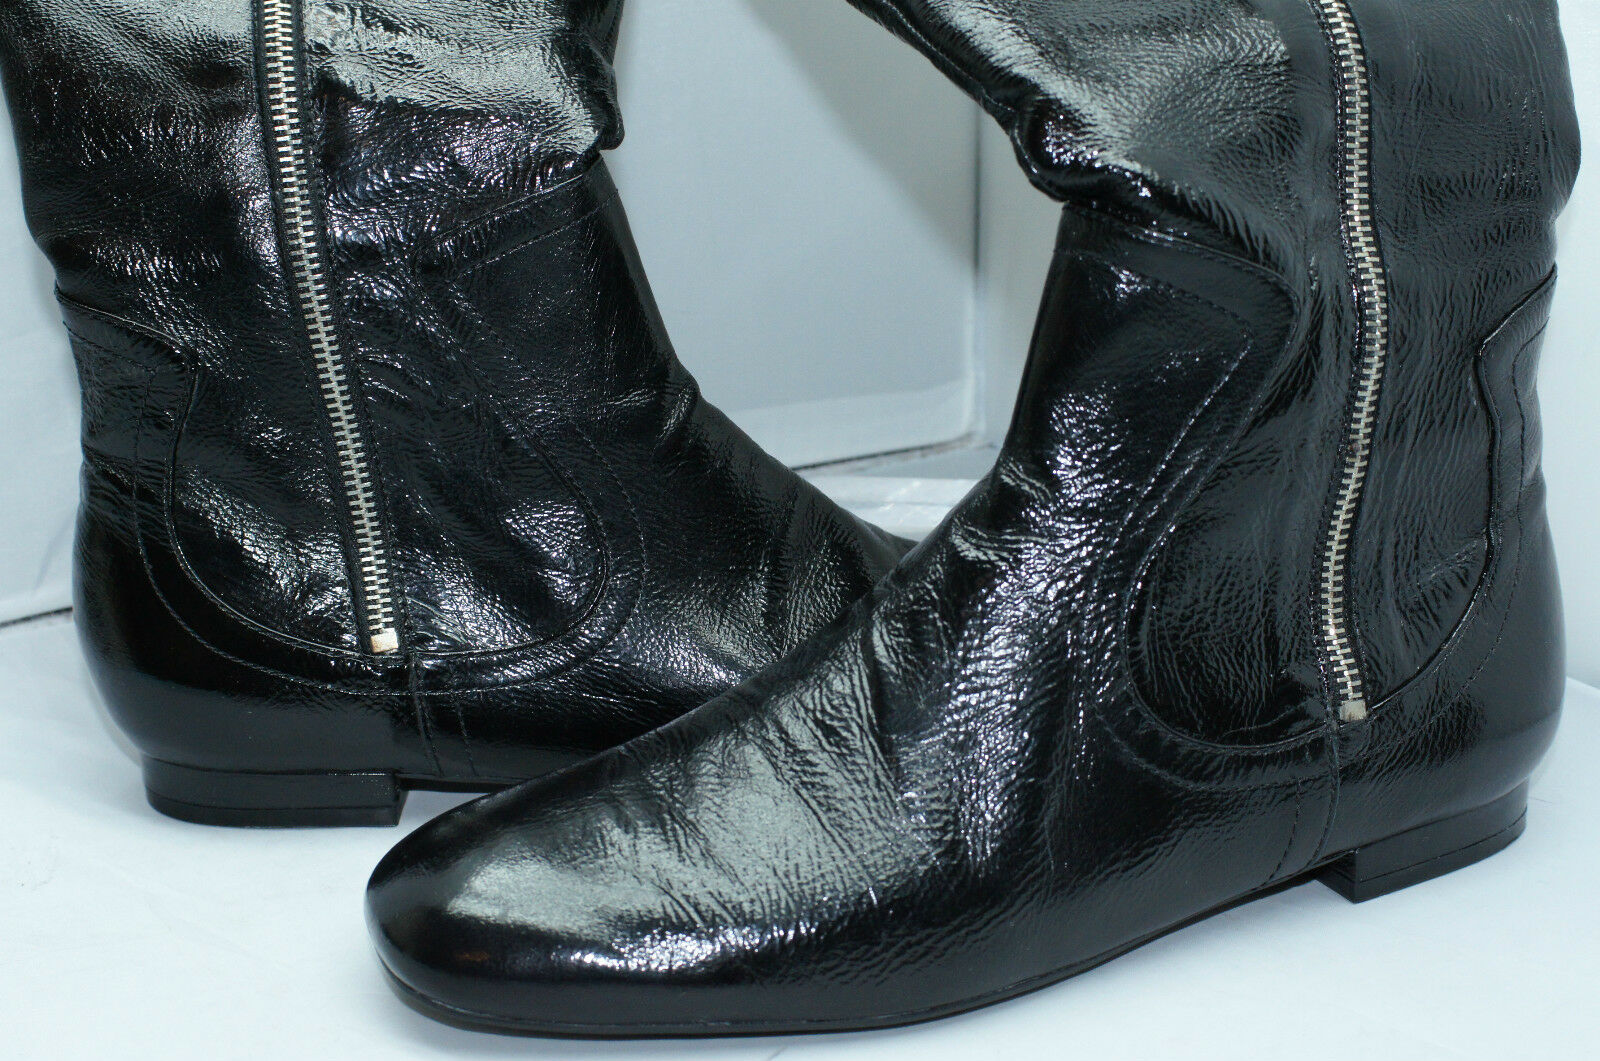 New Guess Boots Vivianna Black Size 8.5 Knee High Patent Leather